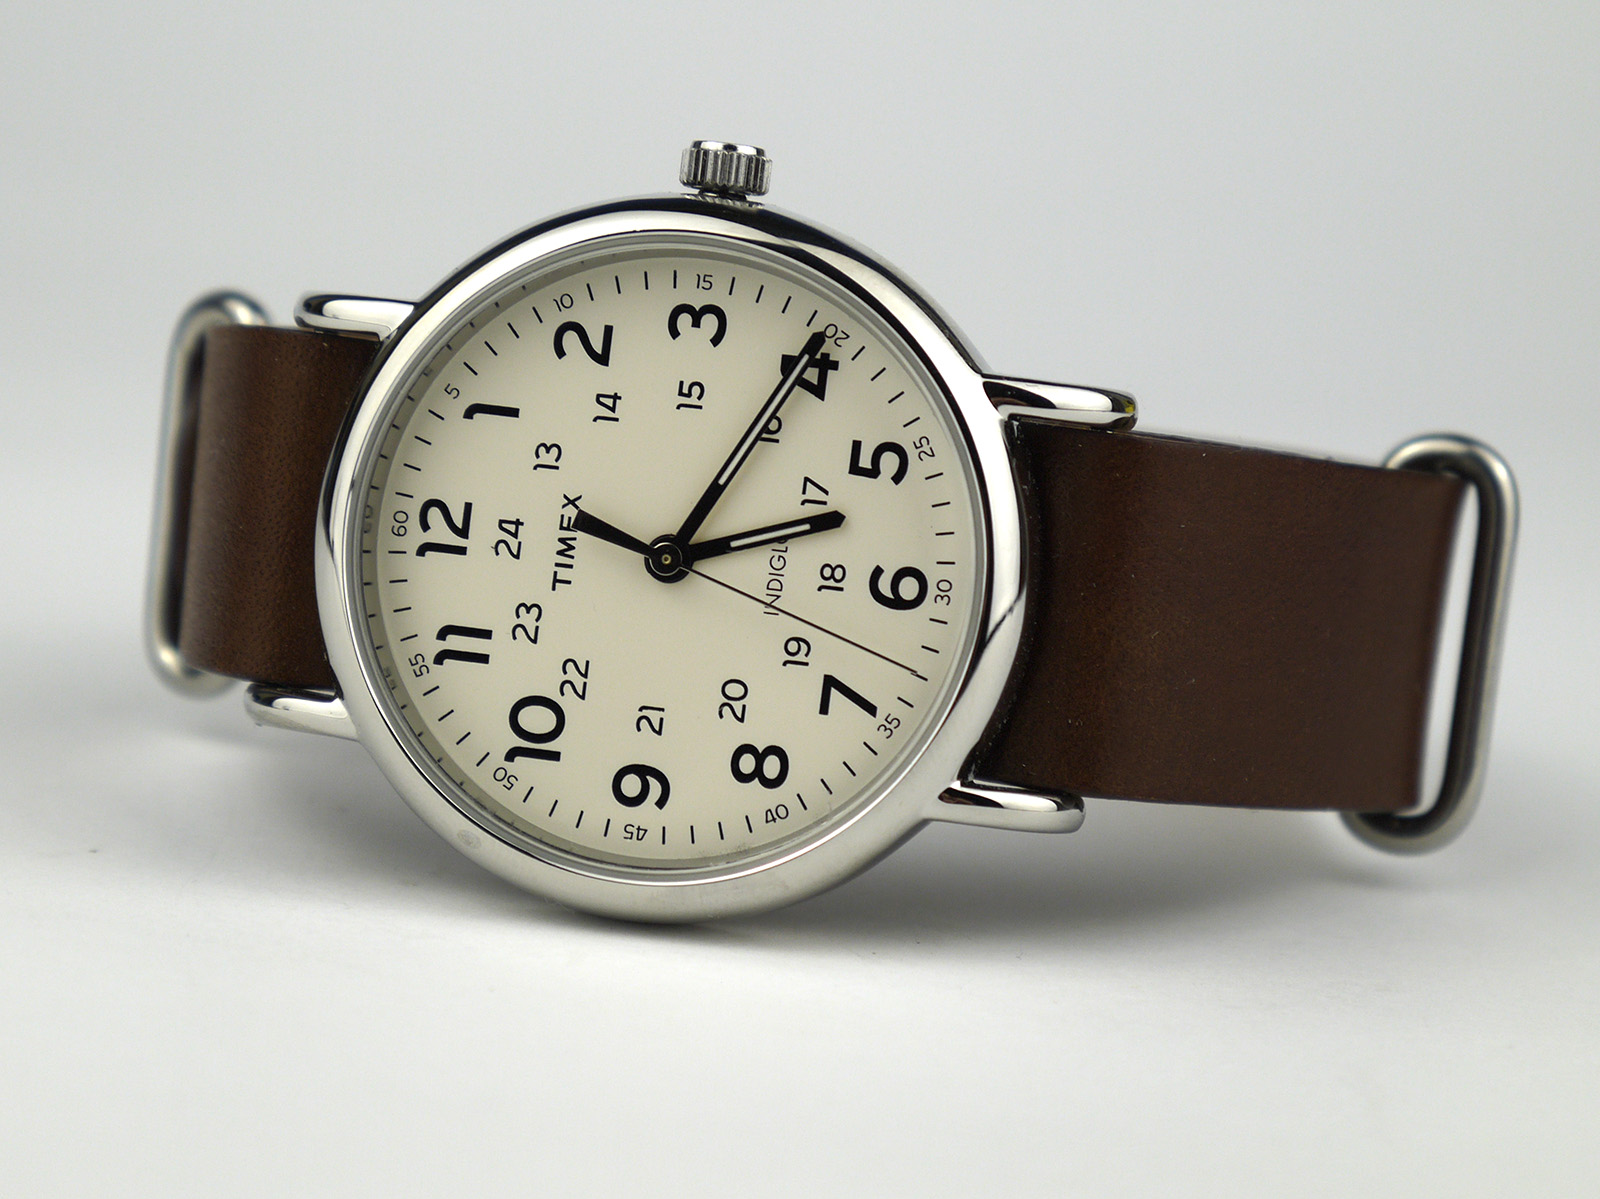 Timex T2p495 Weekender 40mm Watch ⋆ High Quality Watch Gallery